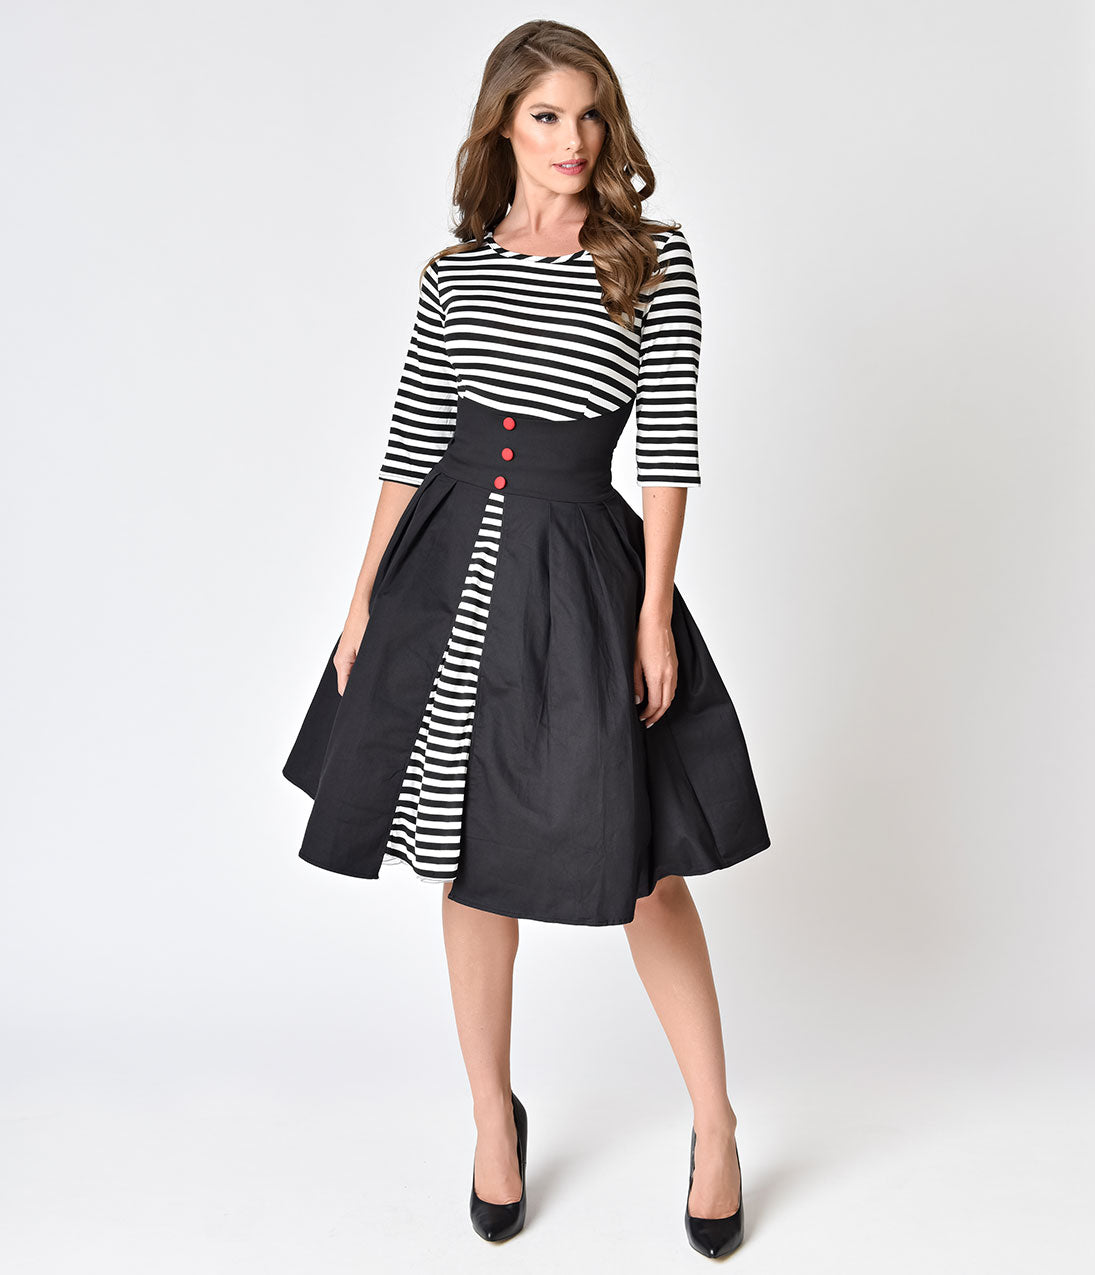 Pin Up Dresses | Pin Up Clothing 1950s Style Black  White Striped Sleeved Swing Dress $68.00 AT vintagedancer.com